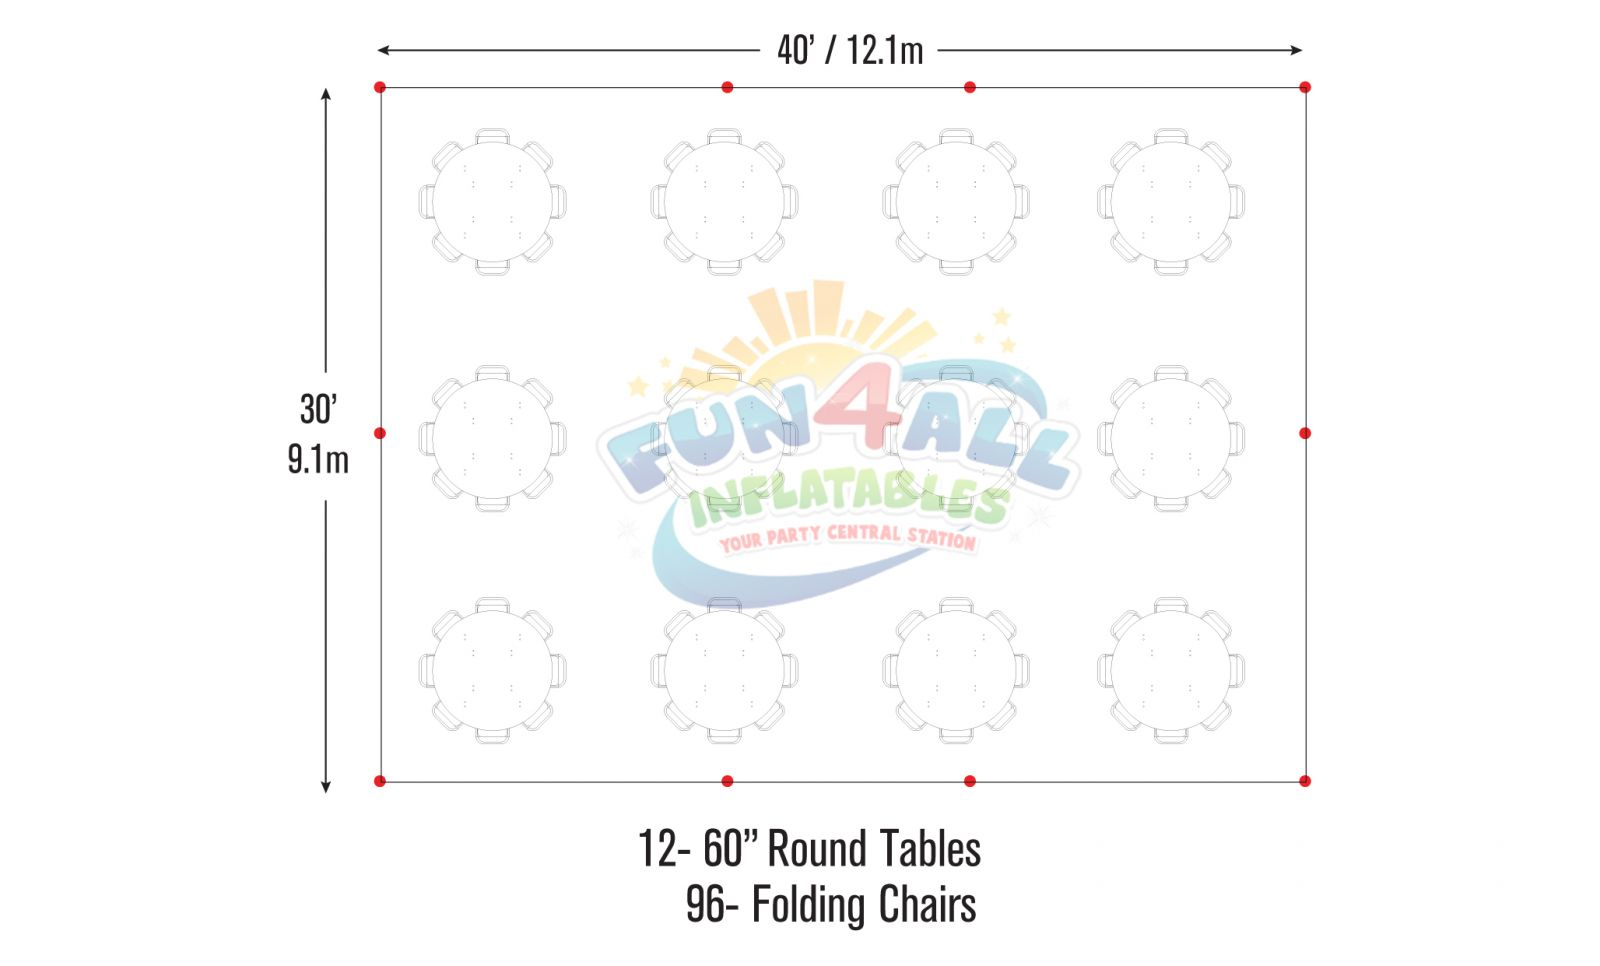 30x40 frame tent seating chart seating for 96